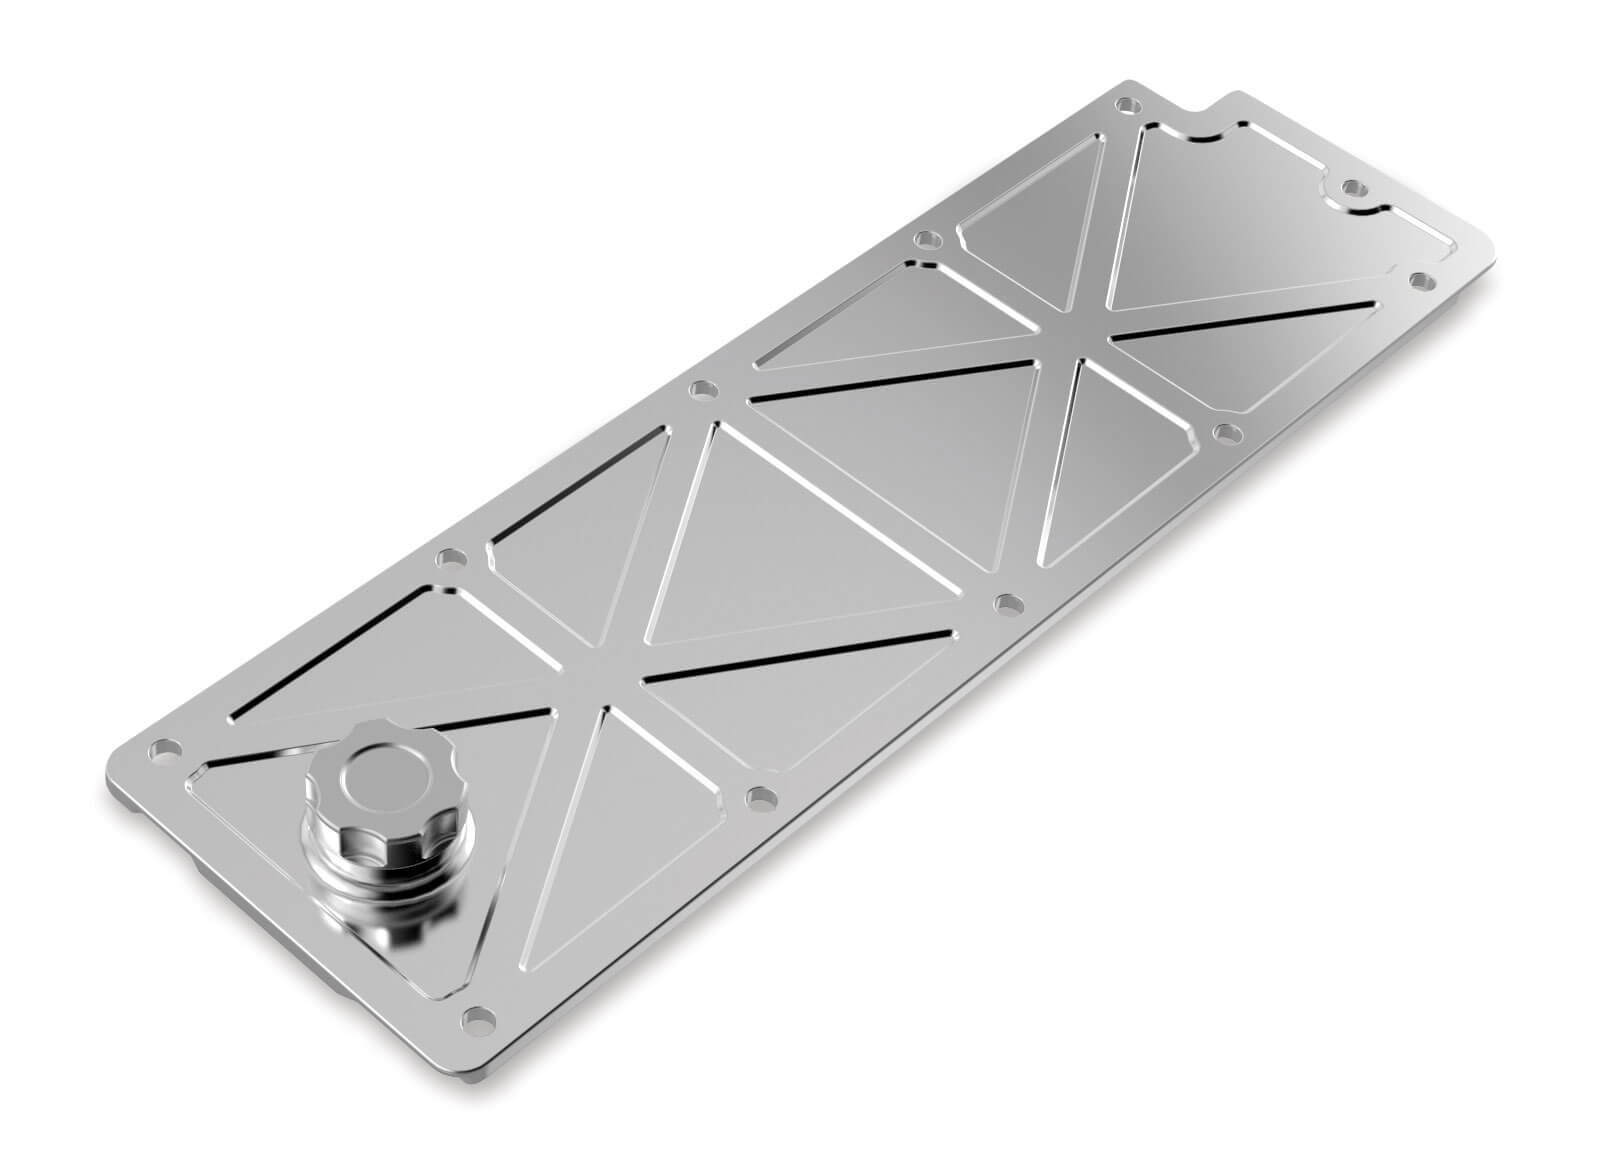 Holley LS2/LS3/LS7/LSX Valley Cover with Oil Fill - Polished Billet